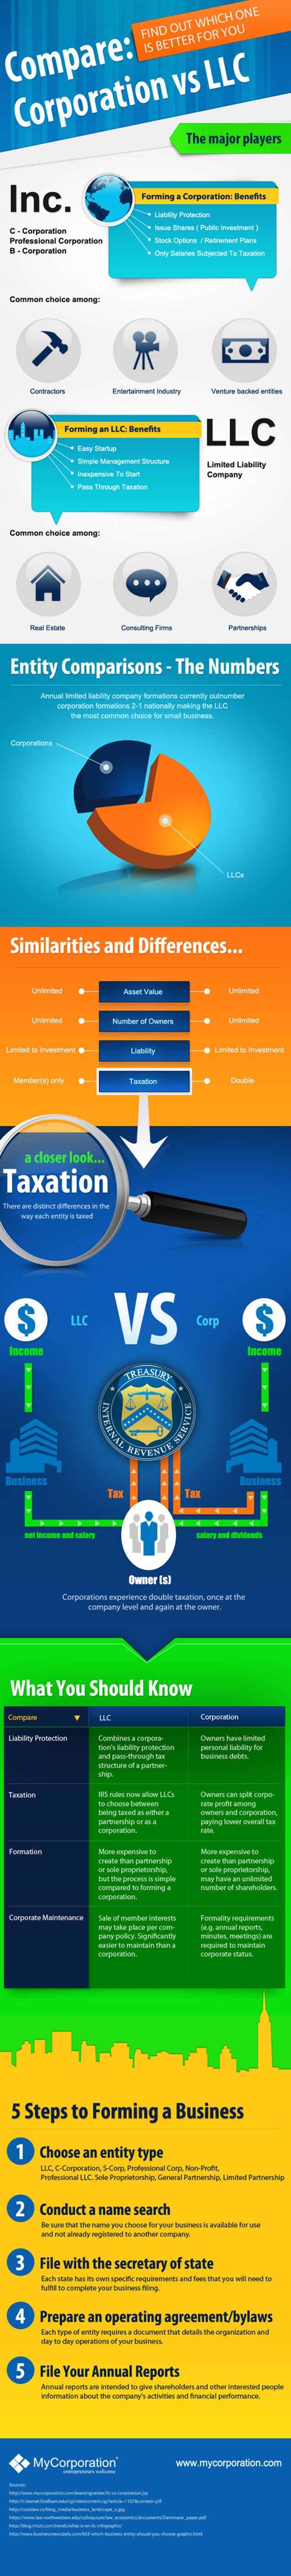 Compare Corporation vs LLC - Business infographic